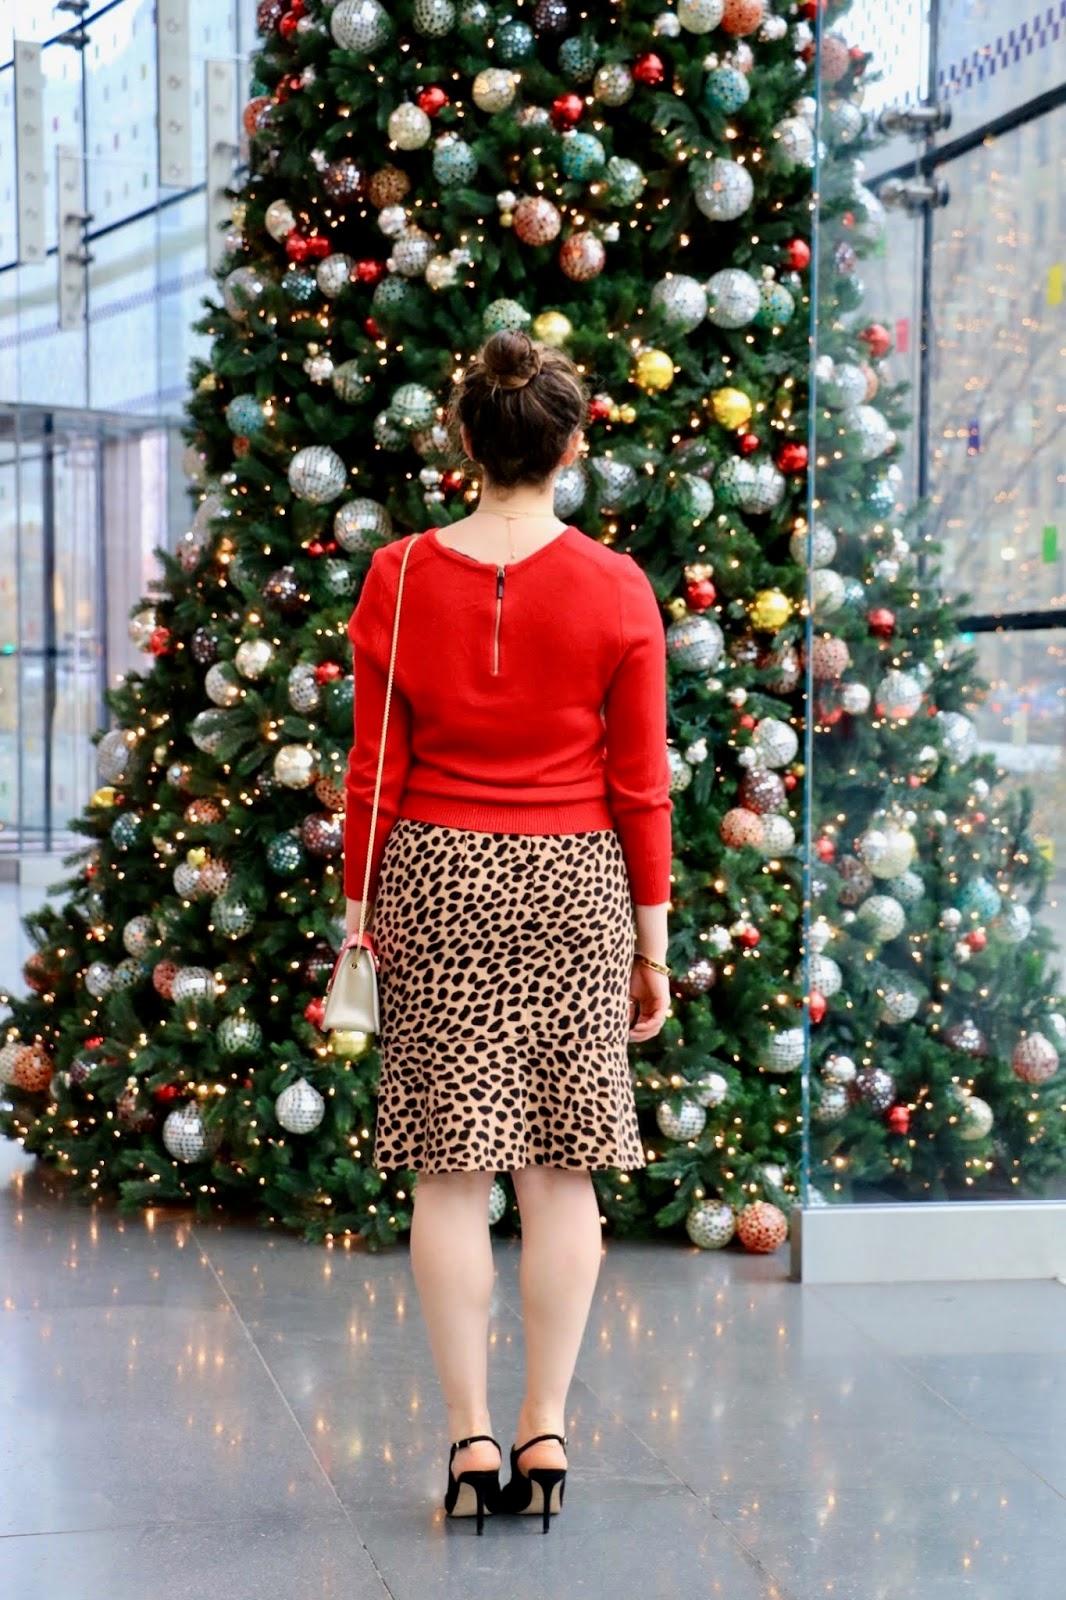 Nyc fashion blogger Kathleen Harper at Brookfield Place's Christmas tree